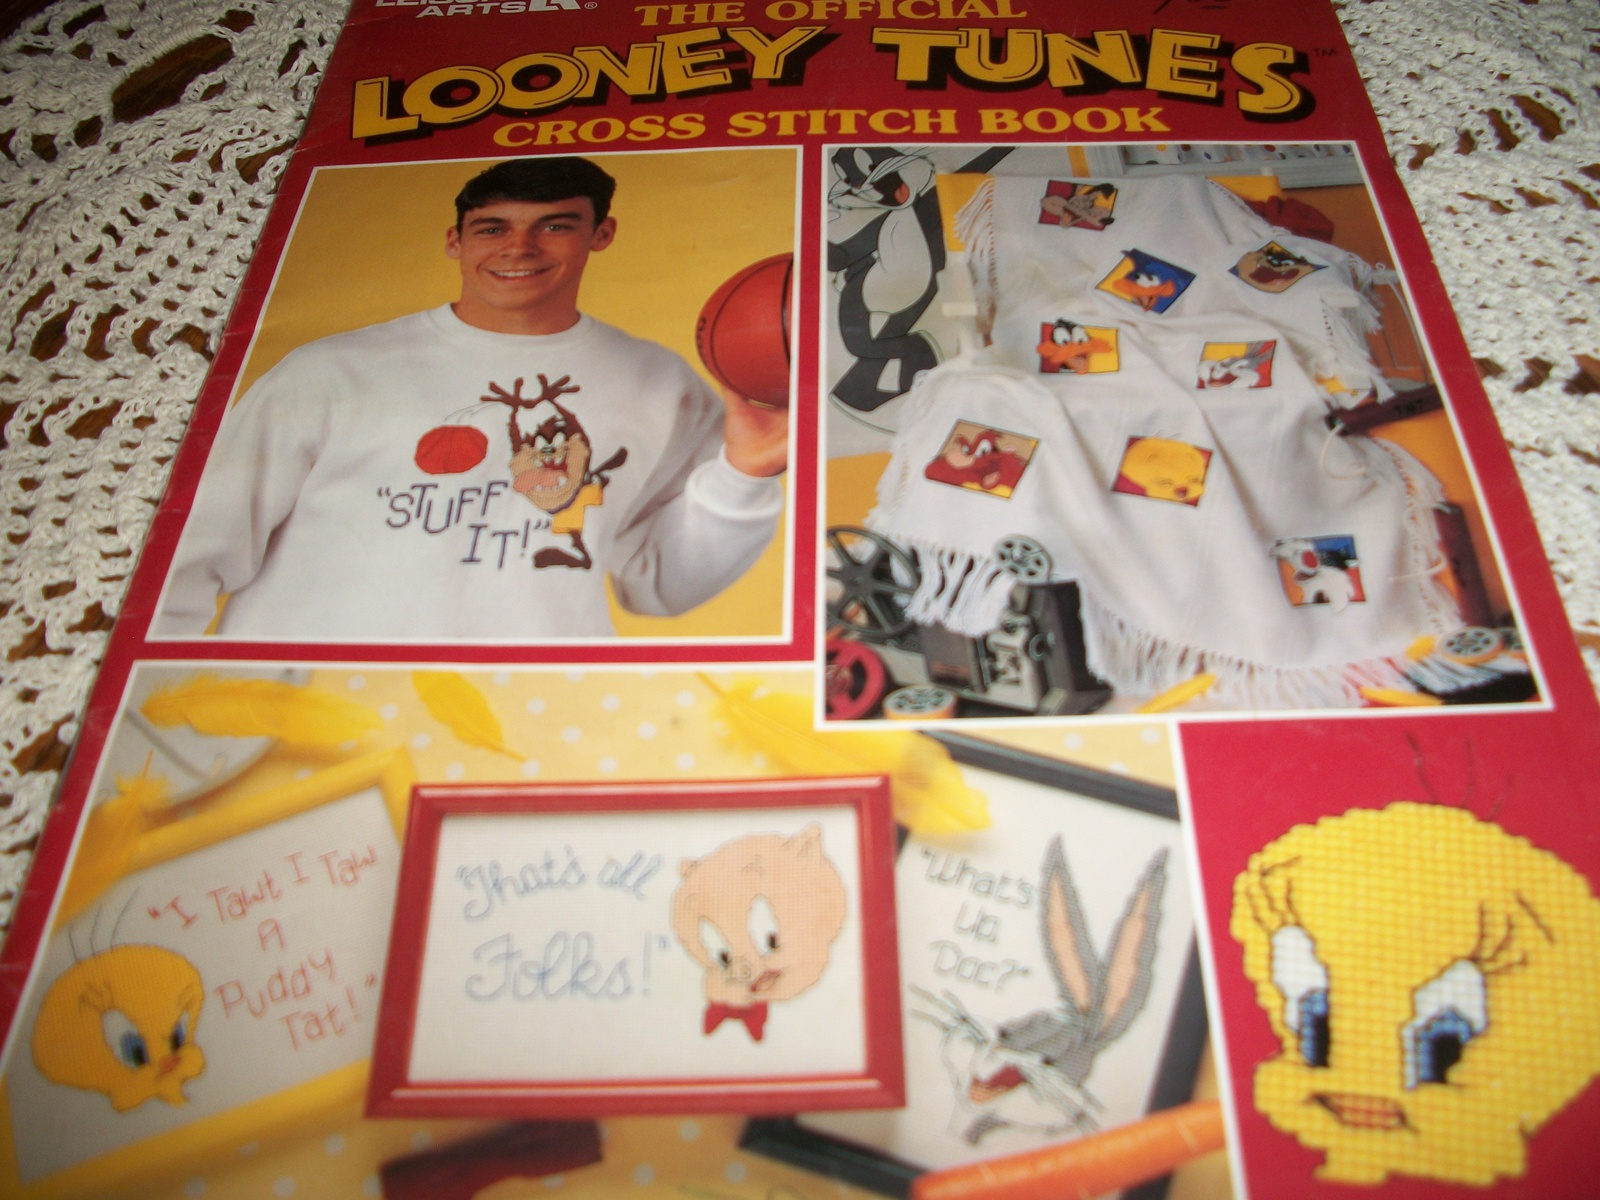 Primary image for The Official Looney Tunes Cross Stitch Book Leaflet 2723